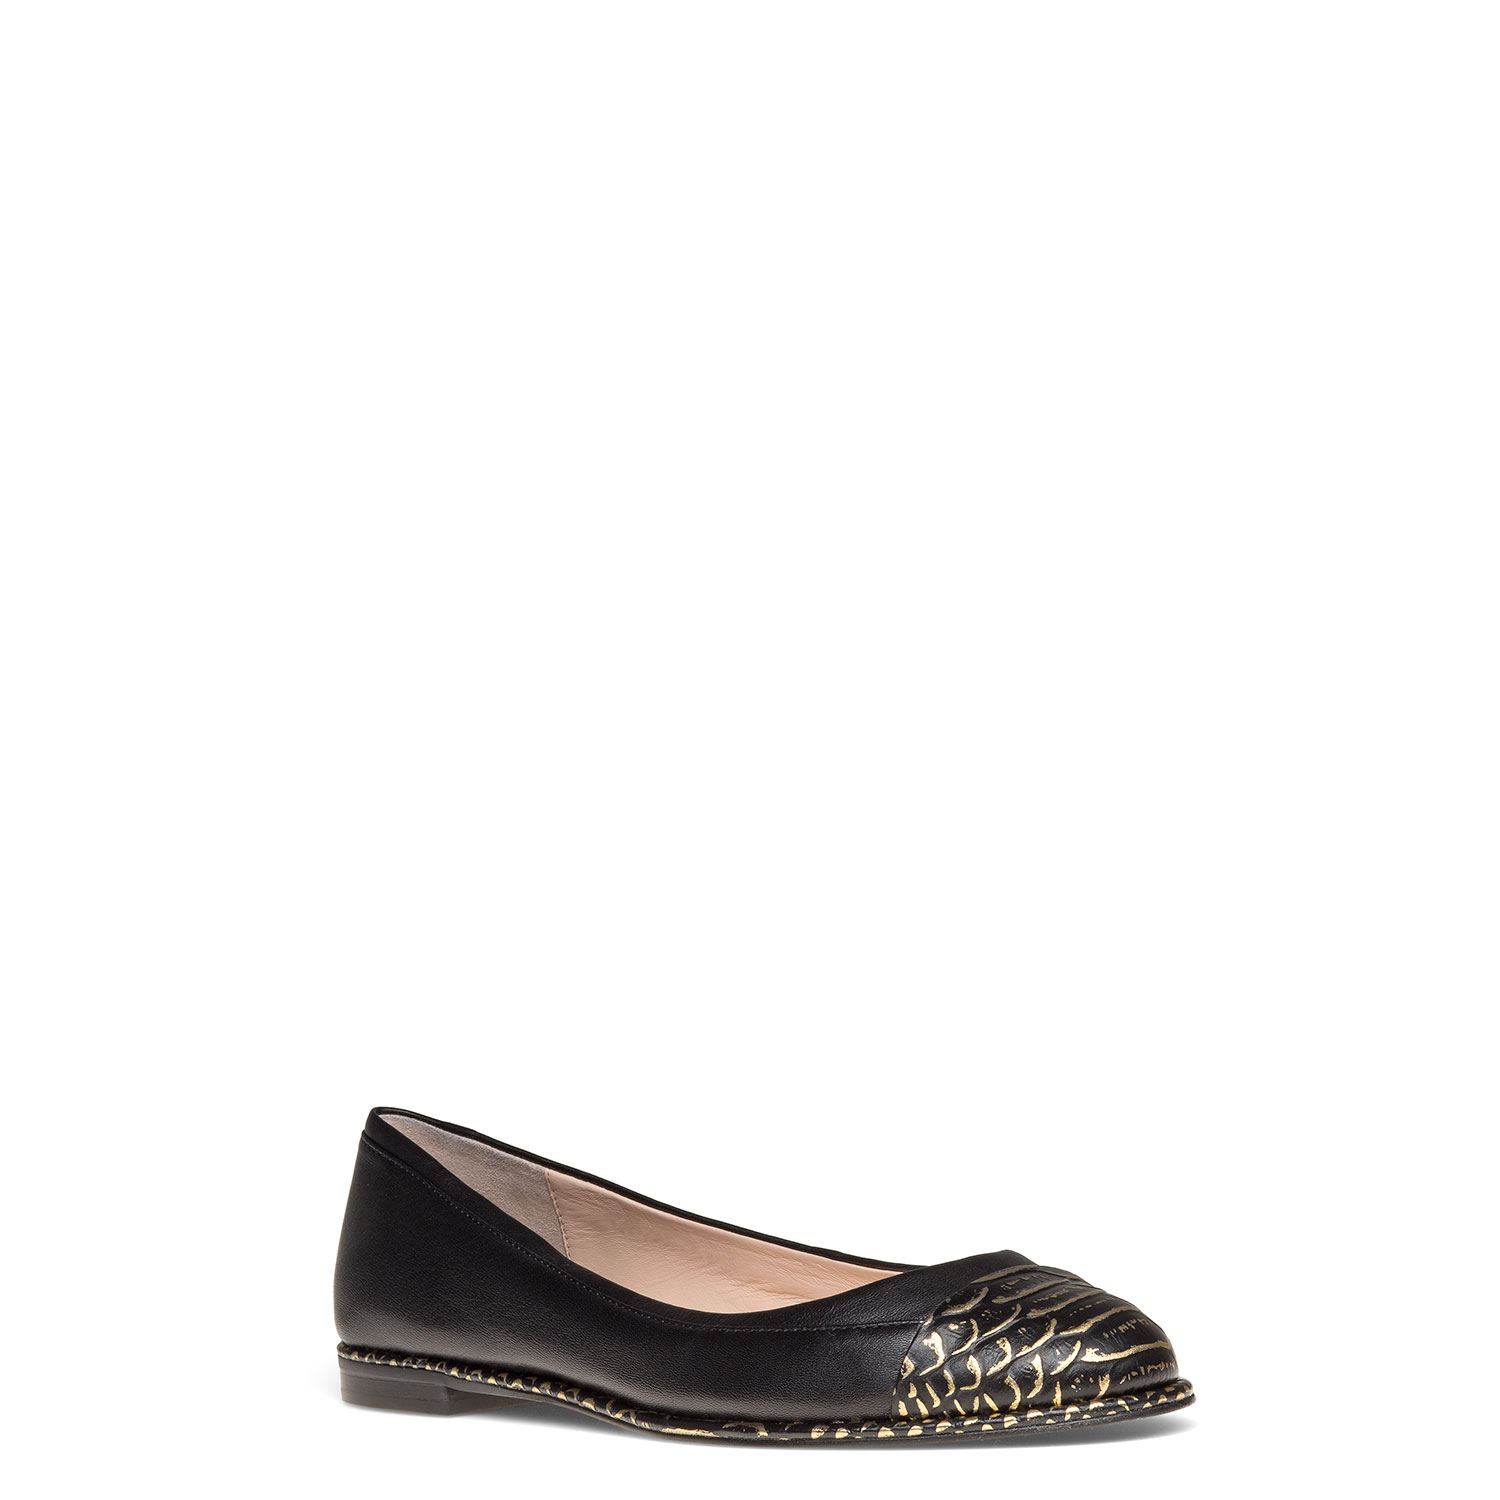 Women's shoes CARLO PAZOLINI MT-AUR2-20